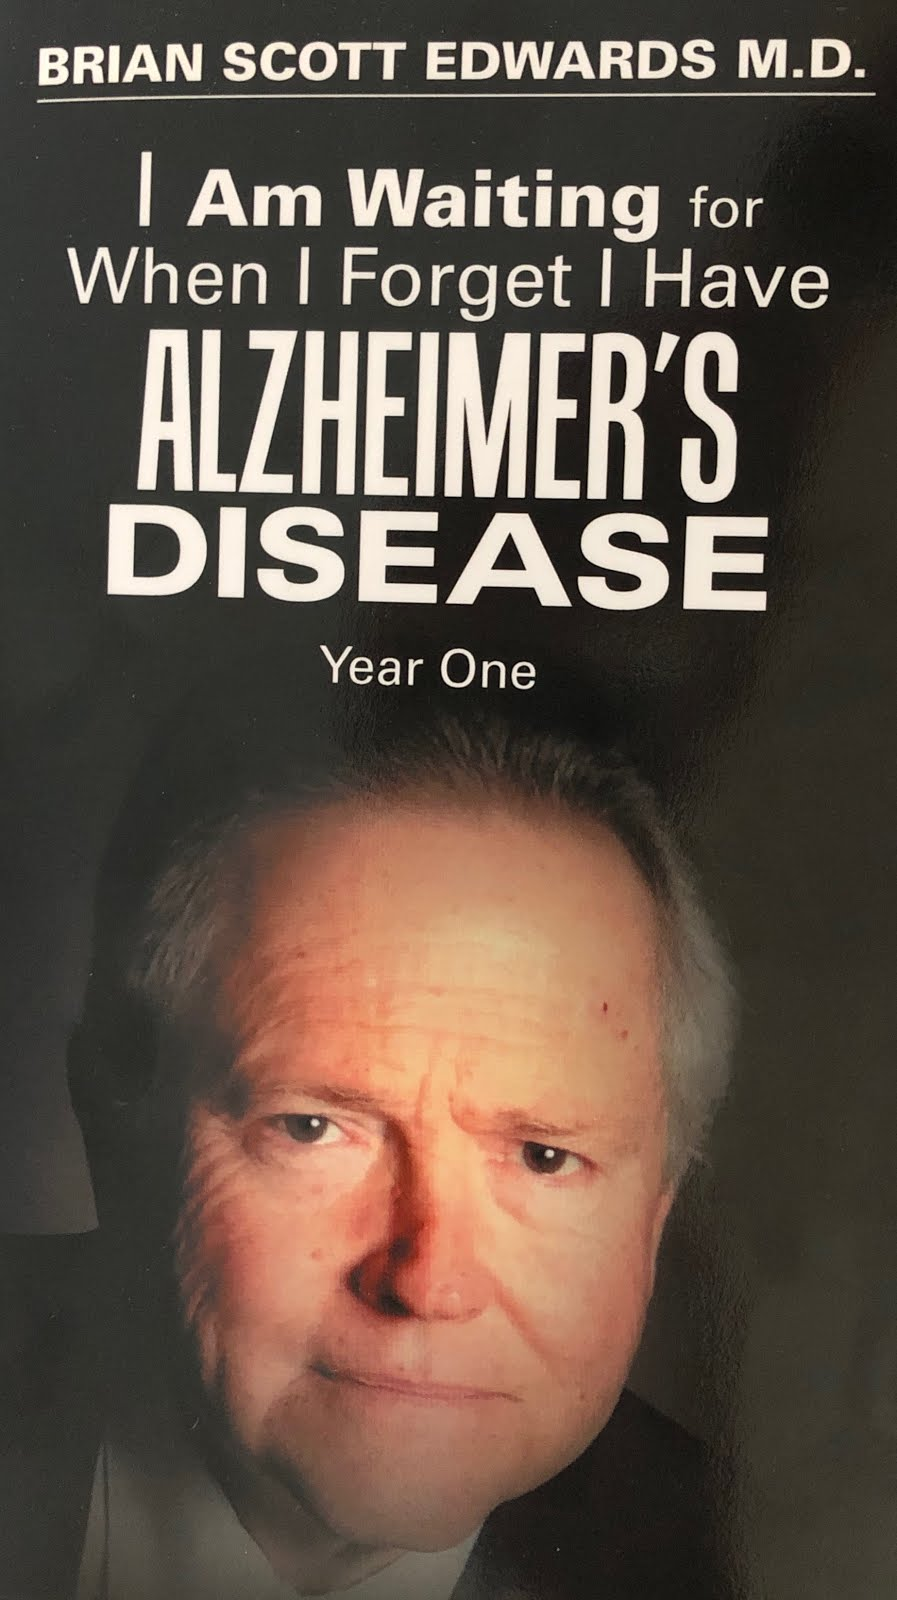 I am waiting for when I forget I have Alzheimer's